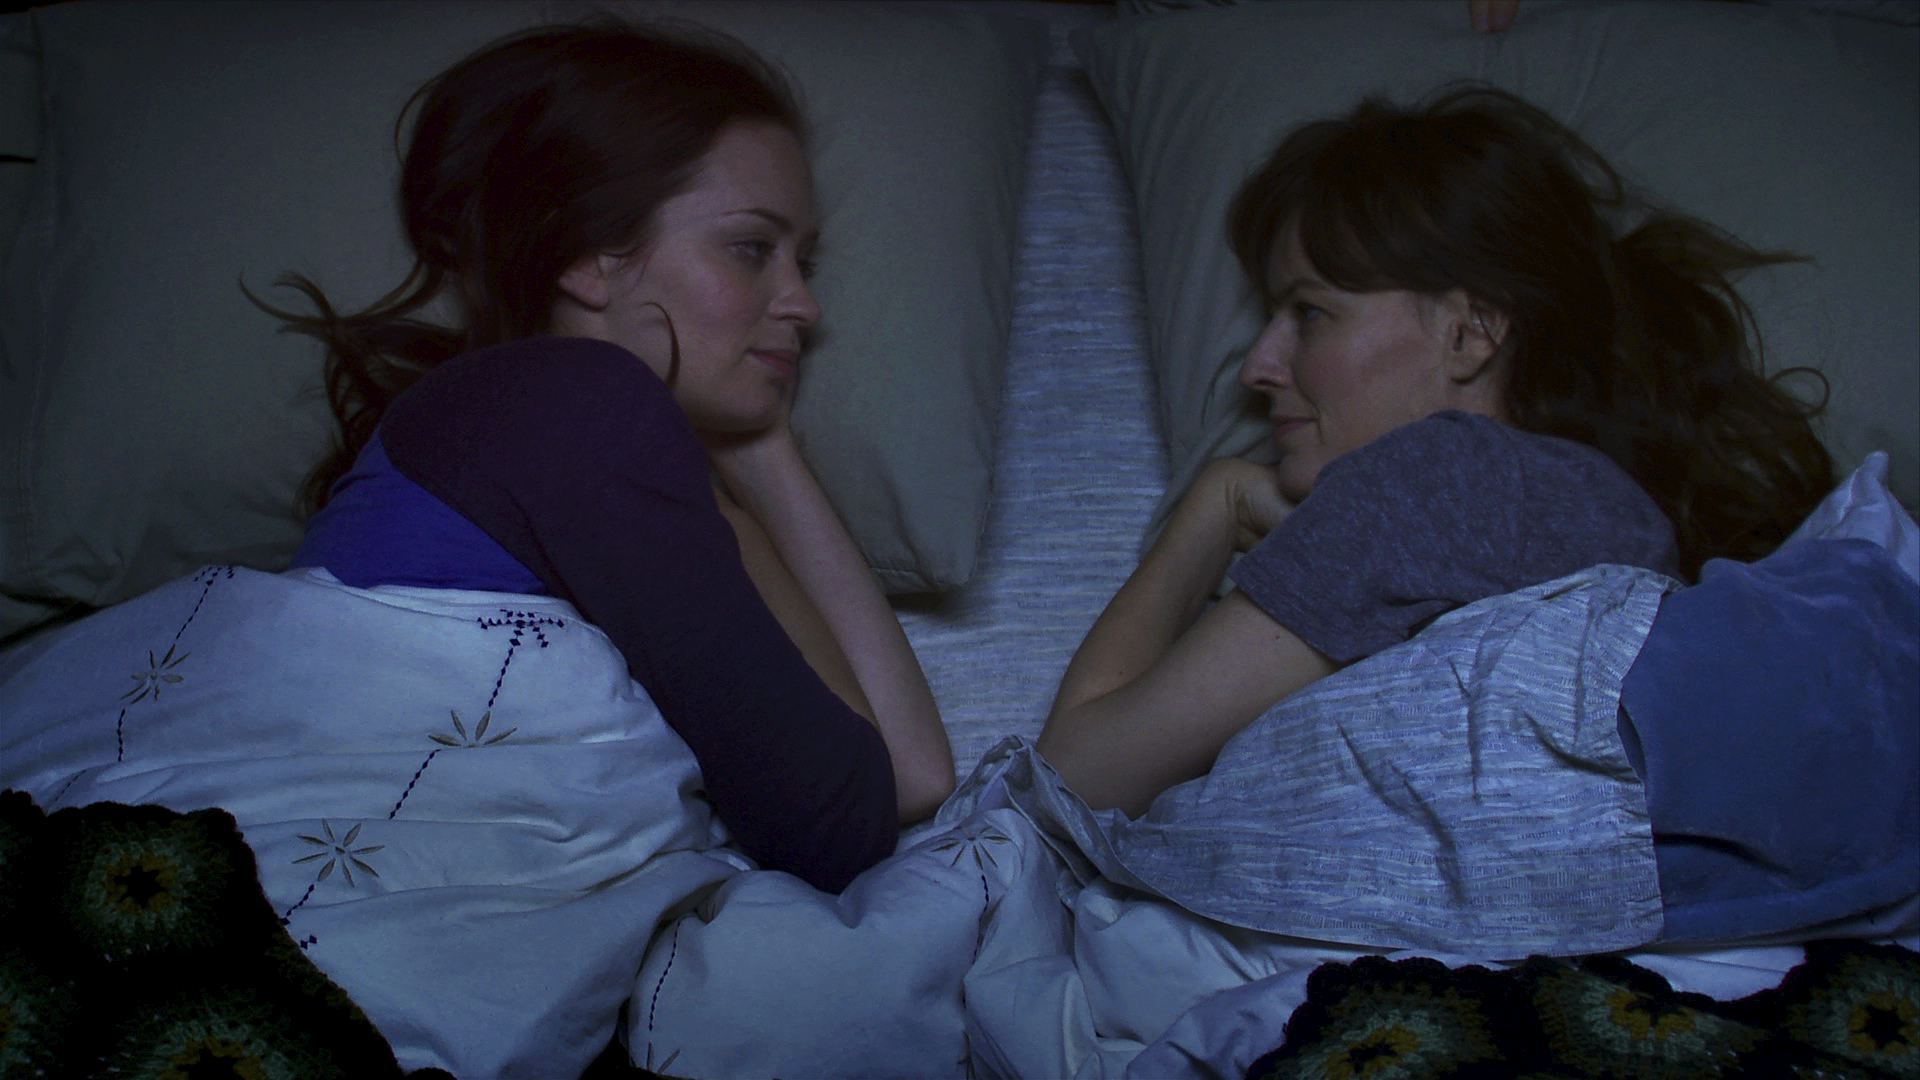 Emily Blunt and Rosemarie DeWitt in Your Sister's Sister (2011)